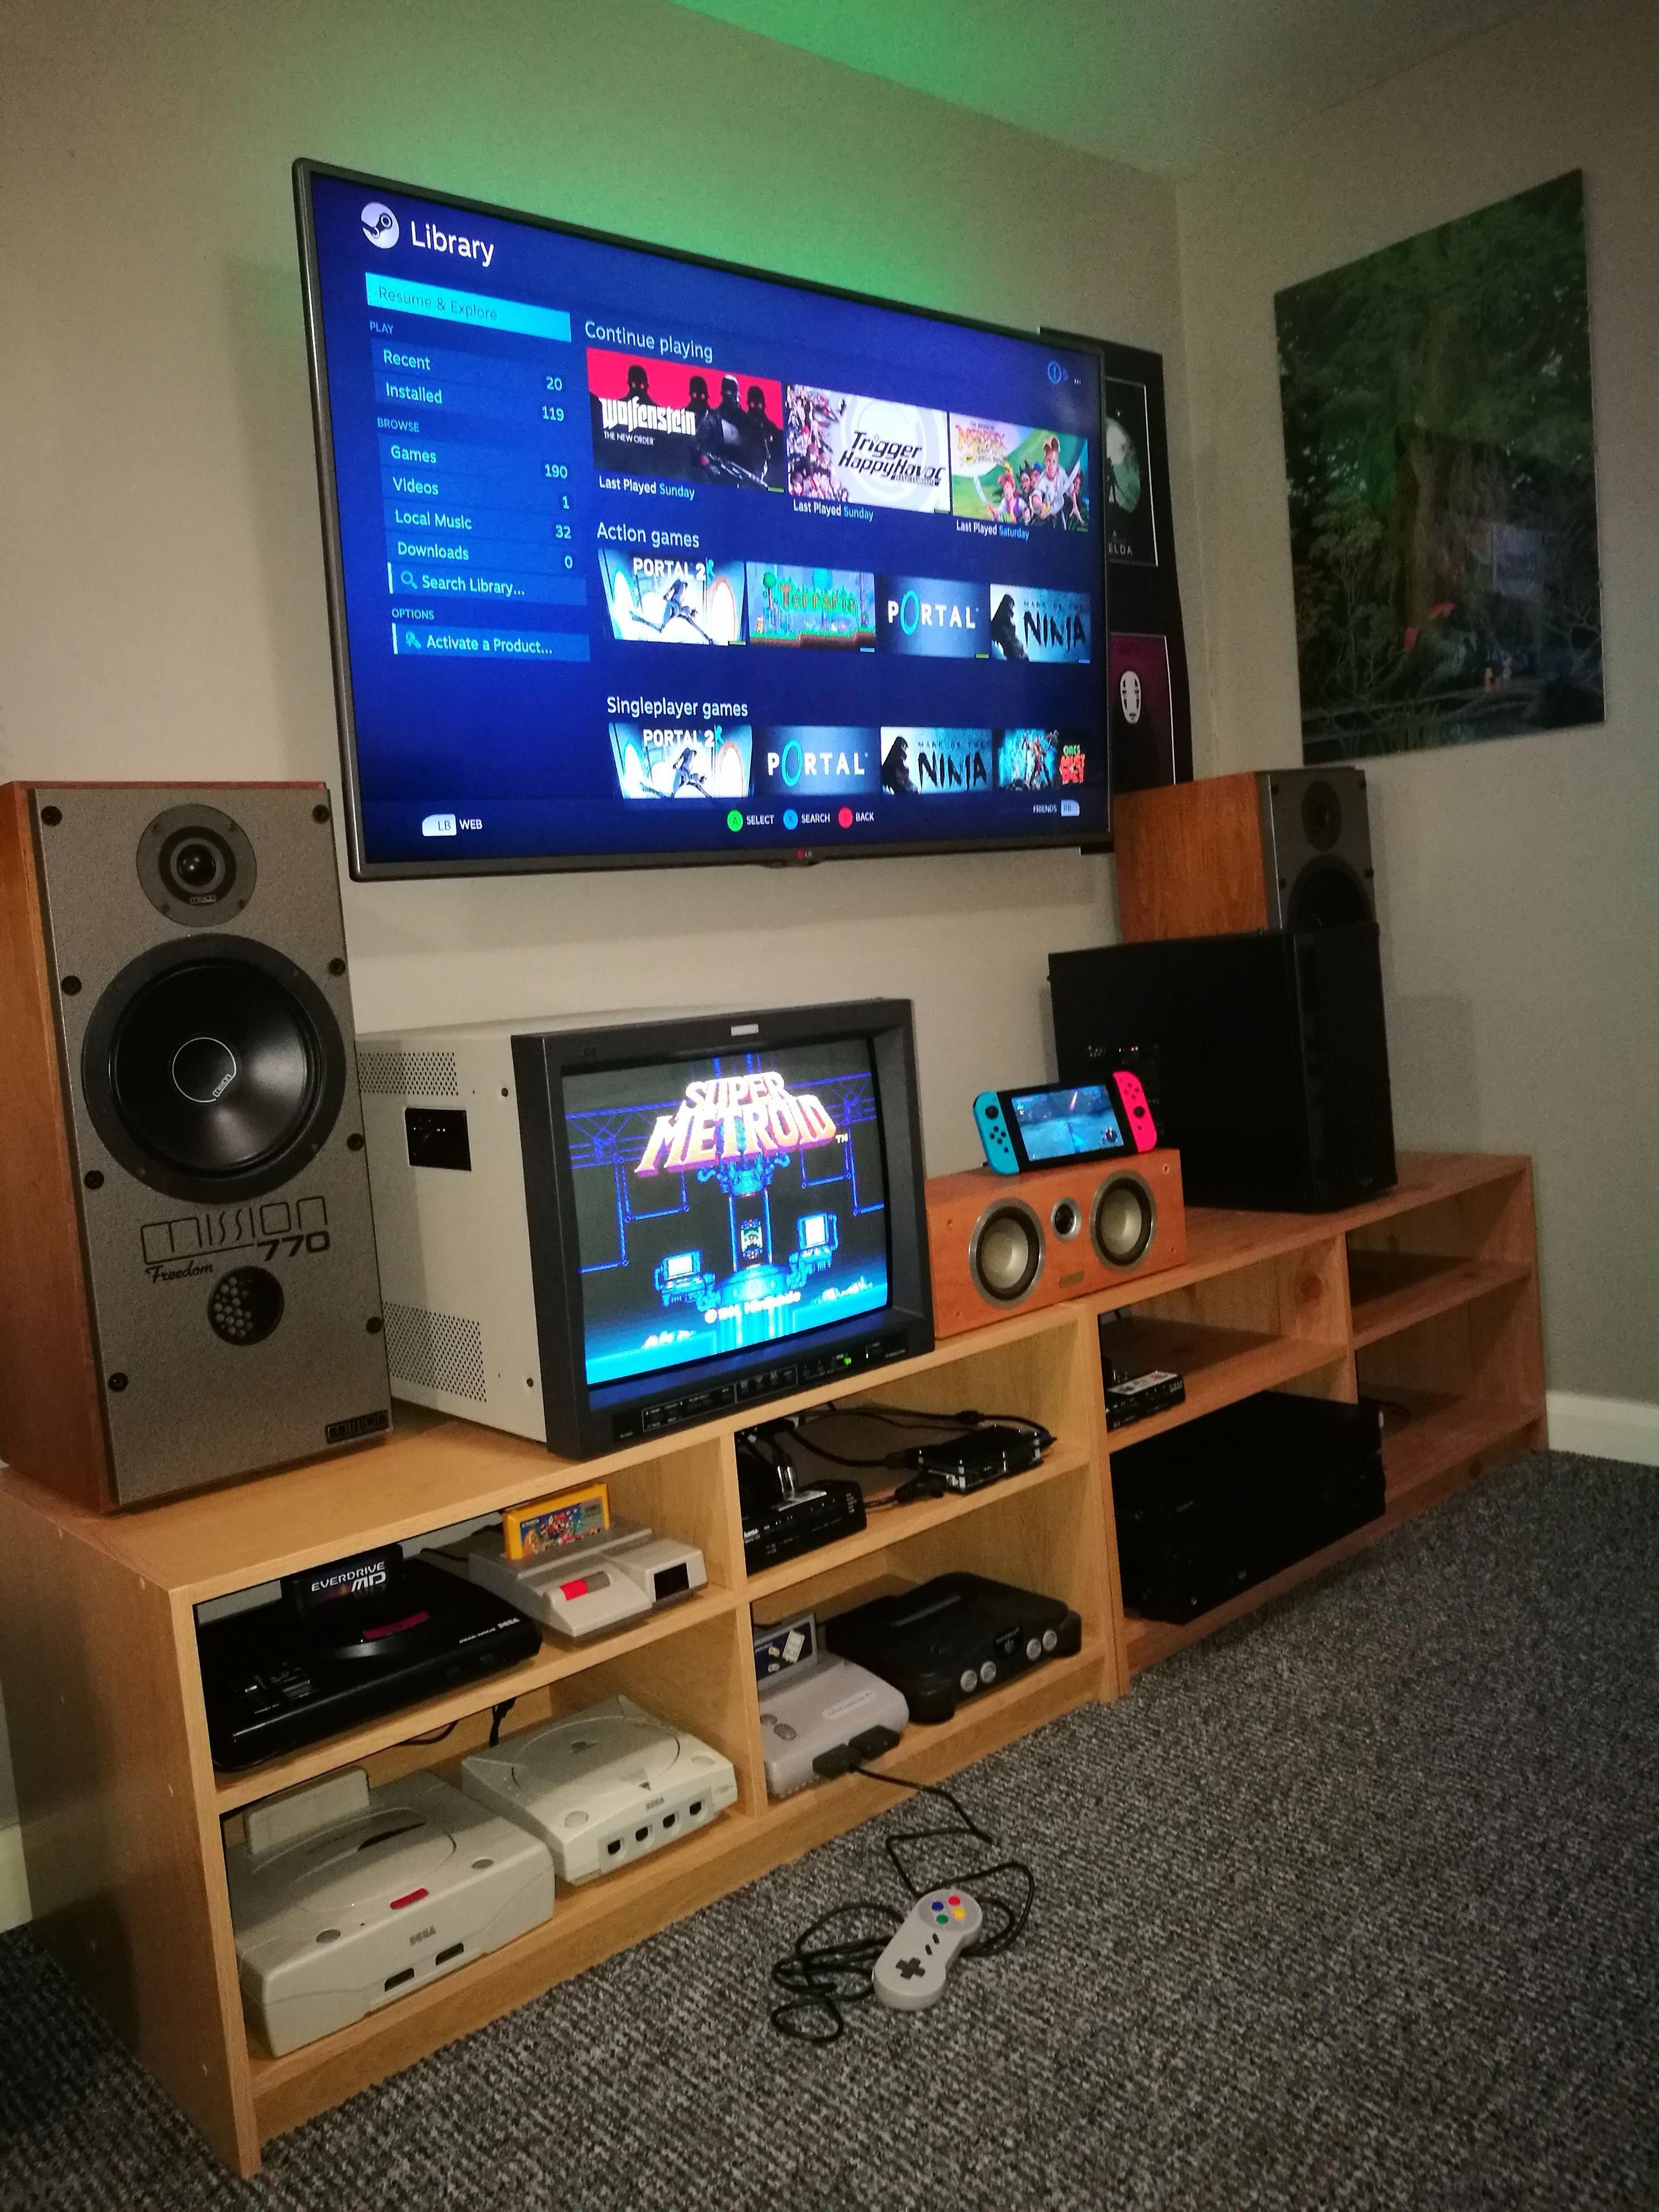 Pin by uwu on Rooms Retro games room, Game room, Video